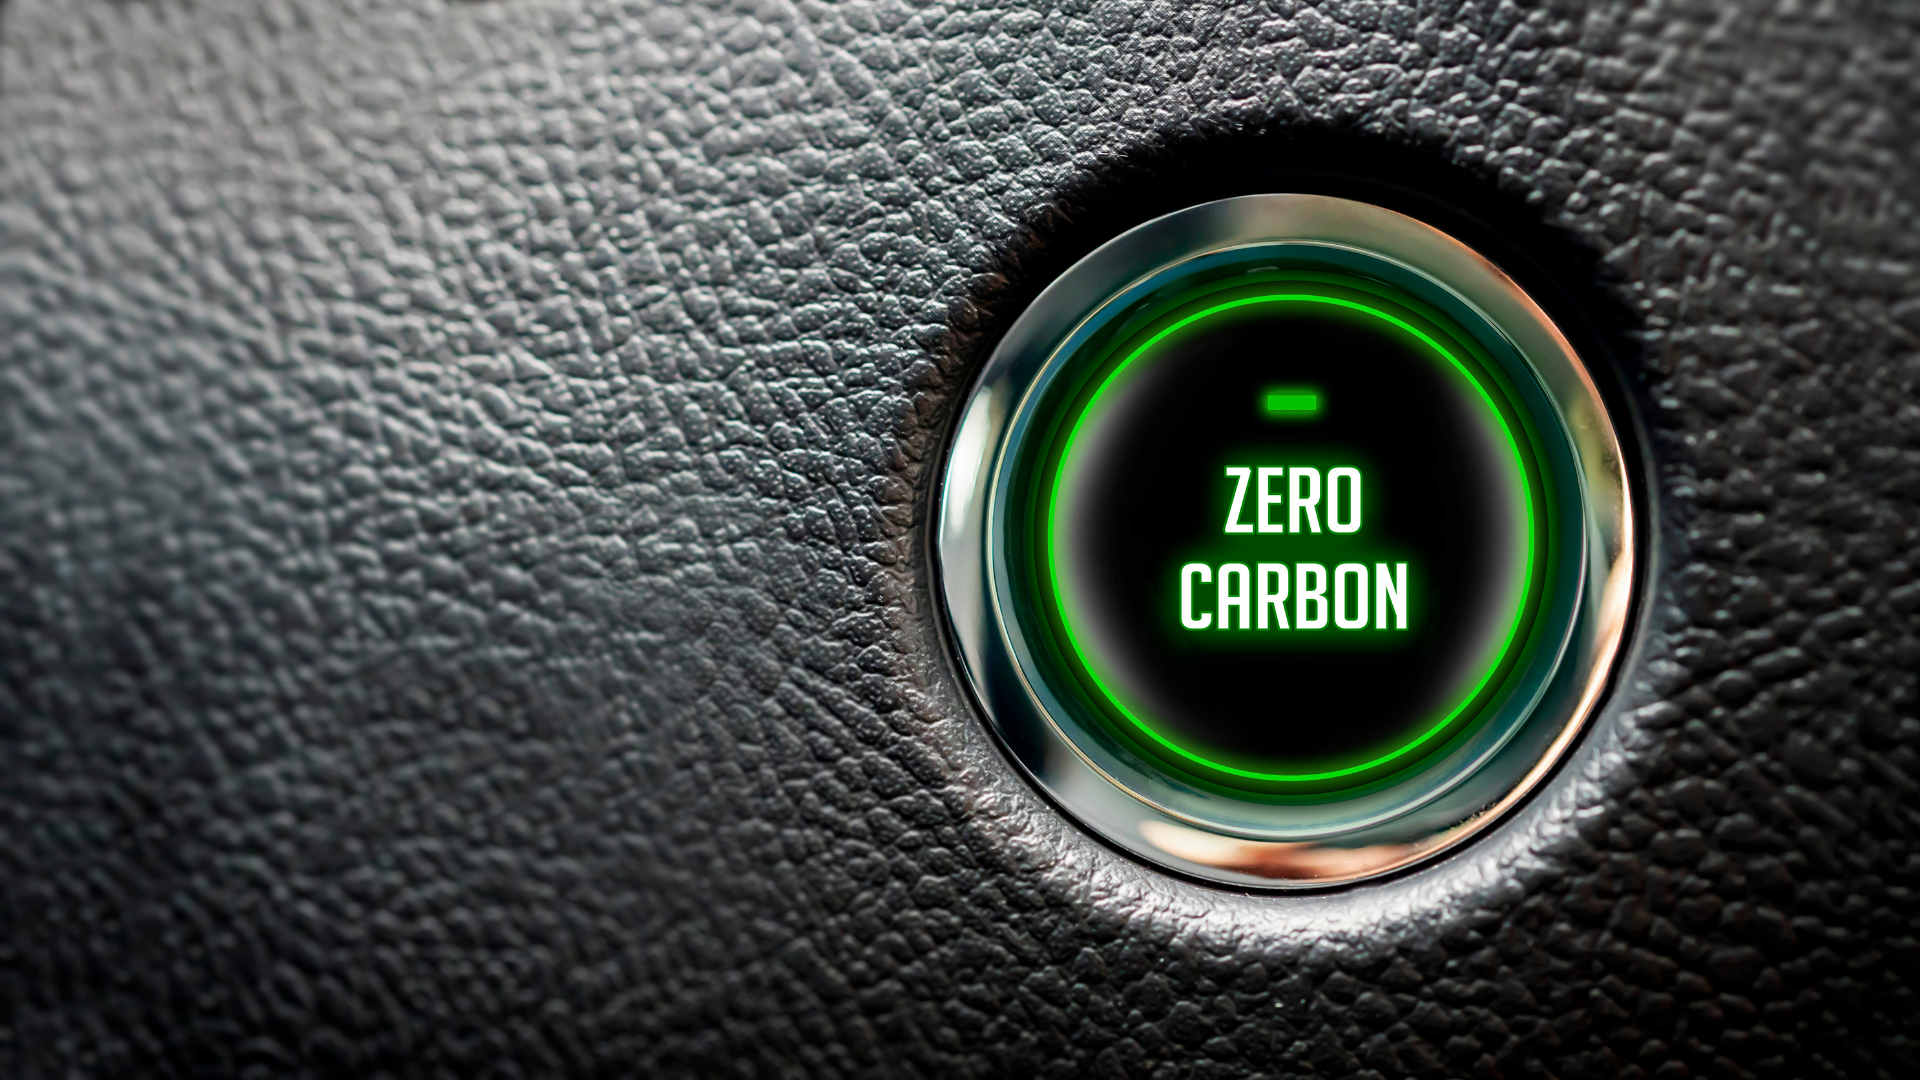 Fleet Operations Commits to Net Zero Carbon Target